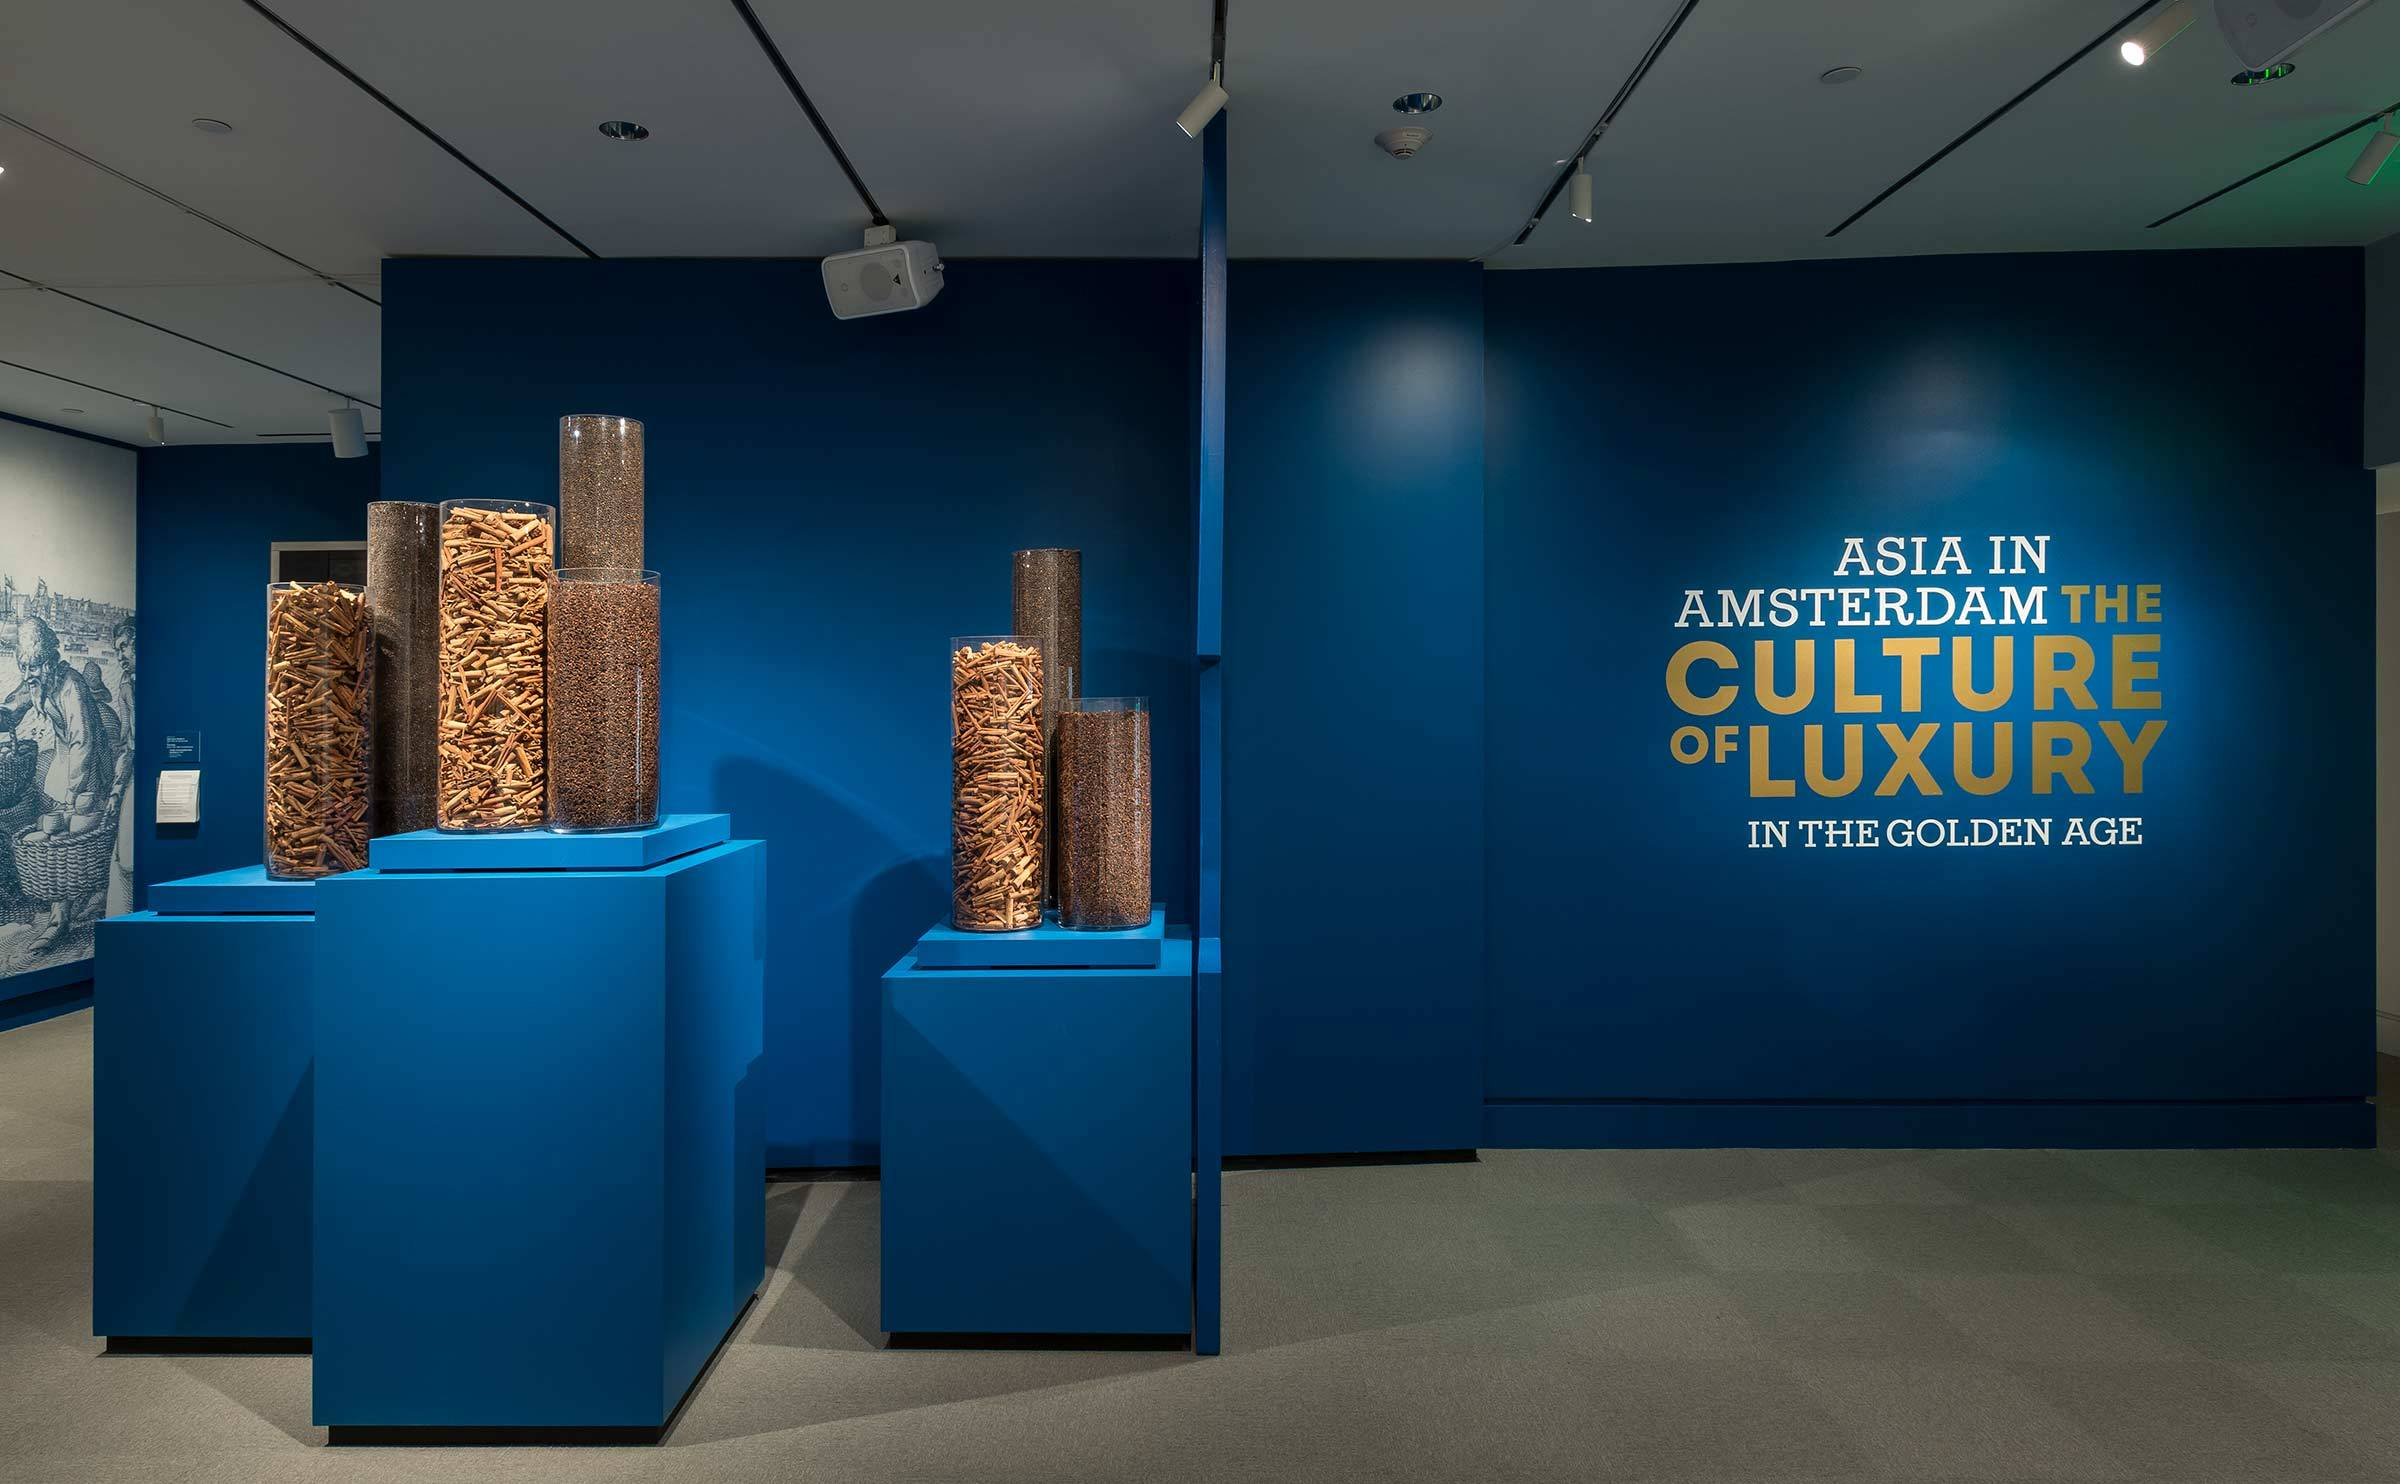 spices in Asia in Amsterdam exhibition